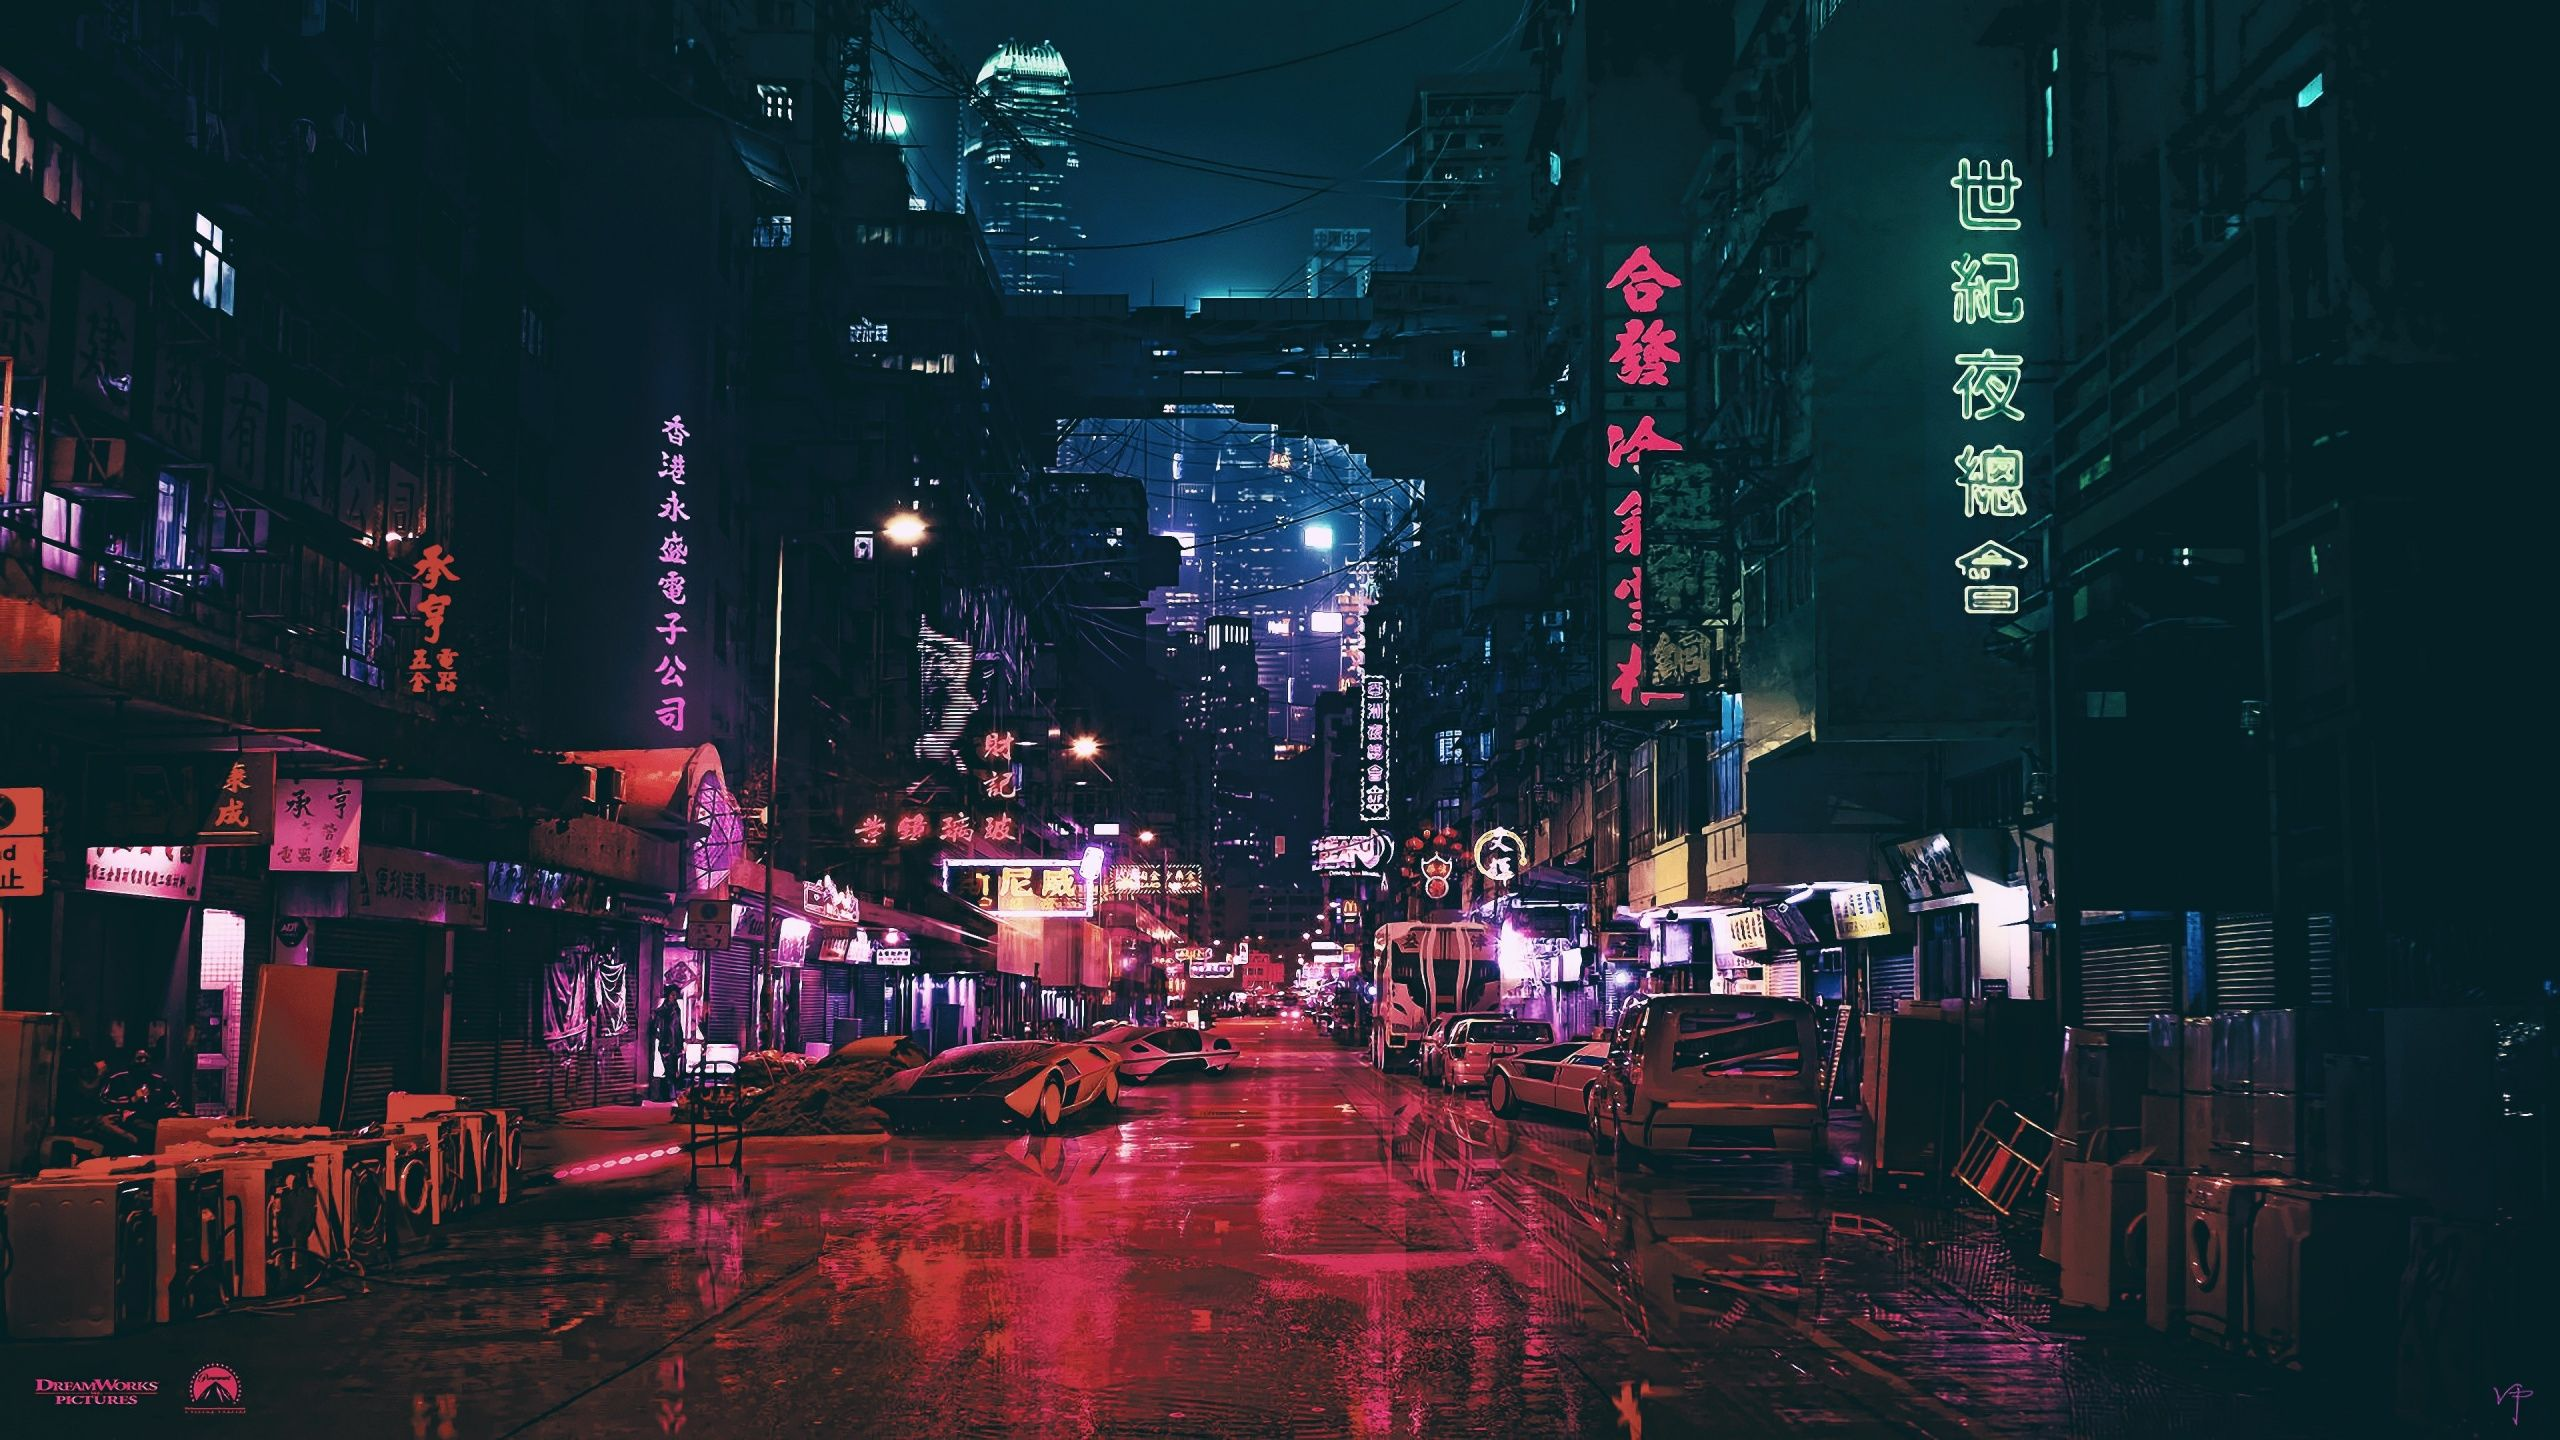 Download 2560x1440 Wallpaper Ghost In The Shell City Movie Dual Wide Widescreen 16 9 Widescreen 2560x1440 H City Wallpaper Futuristic City Cyberpunk City